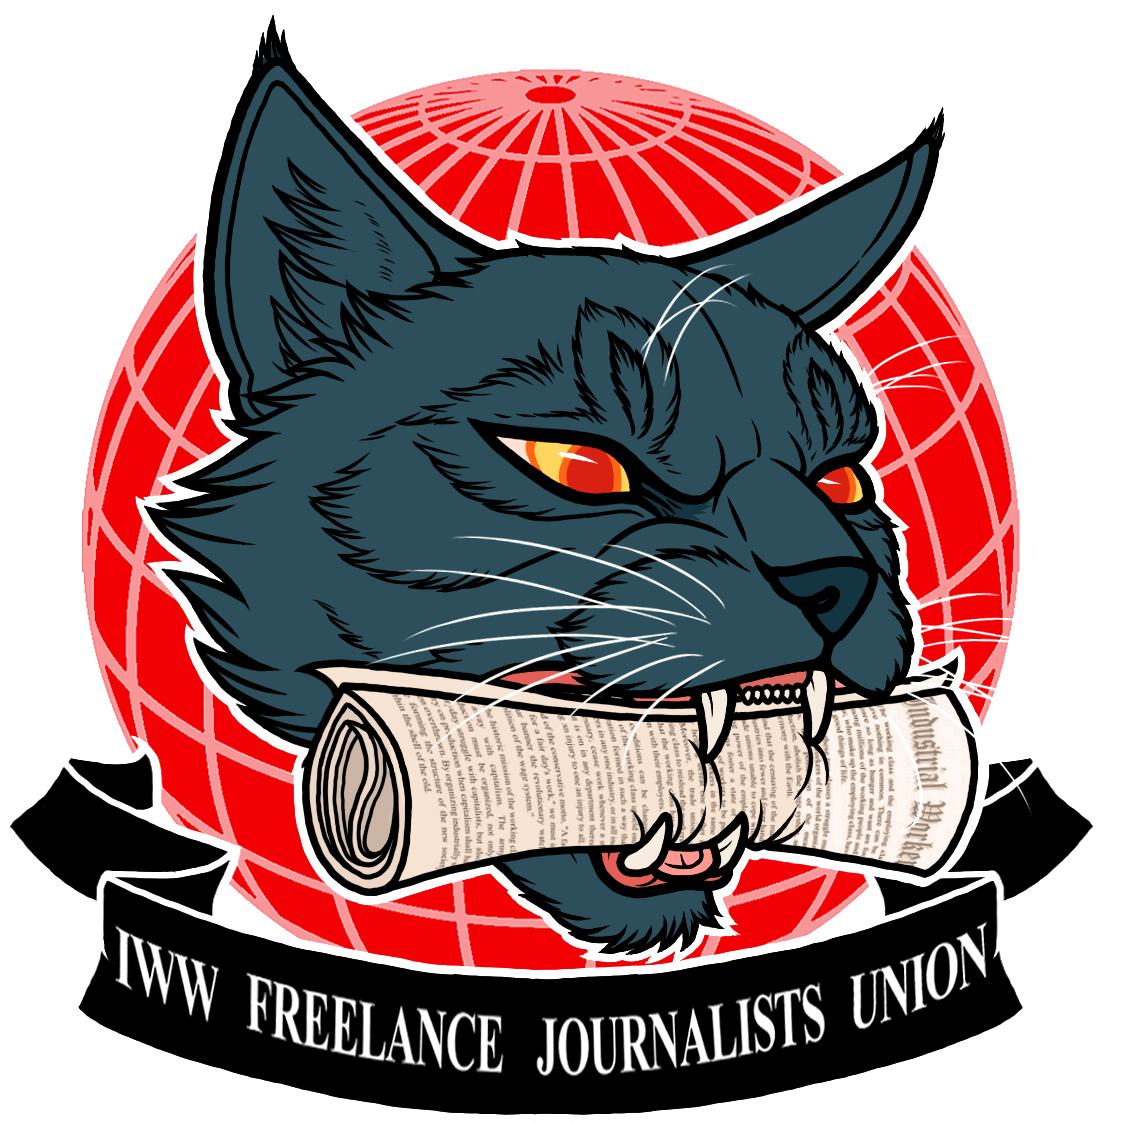 A Year of Organizing Freelance Journalists